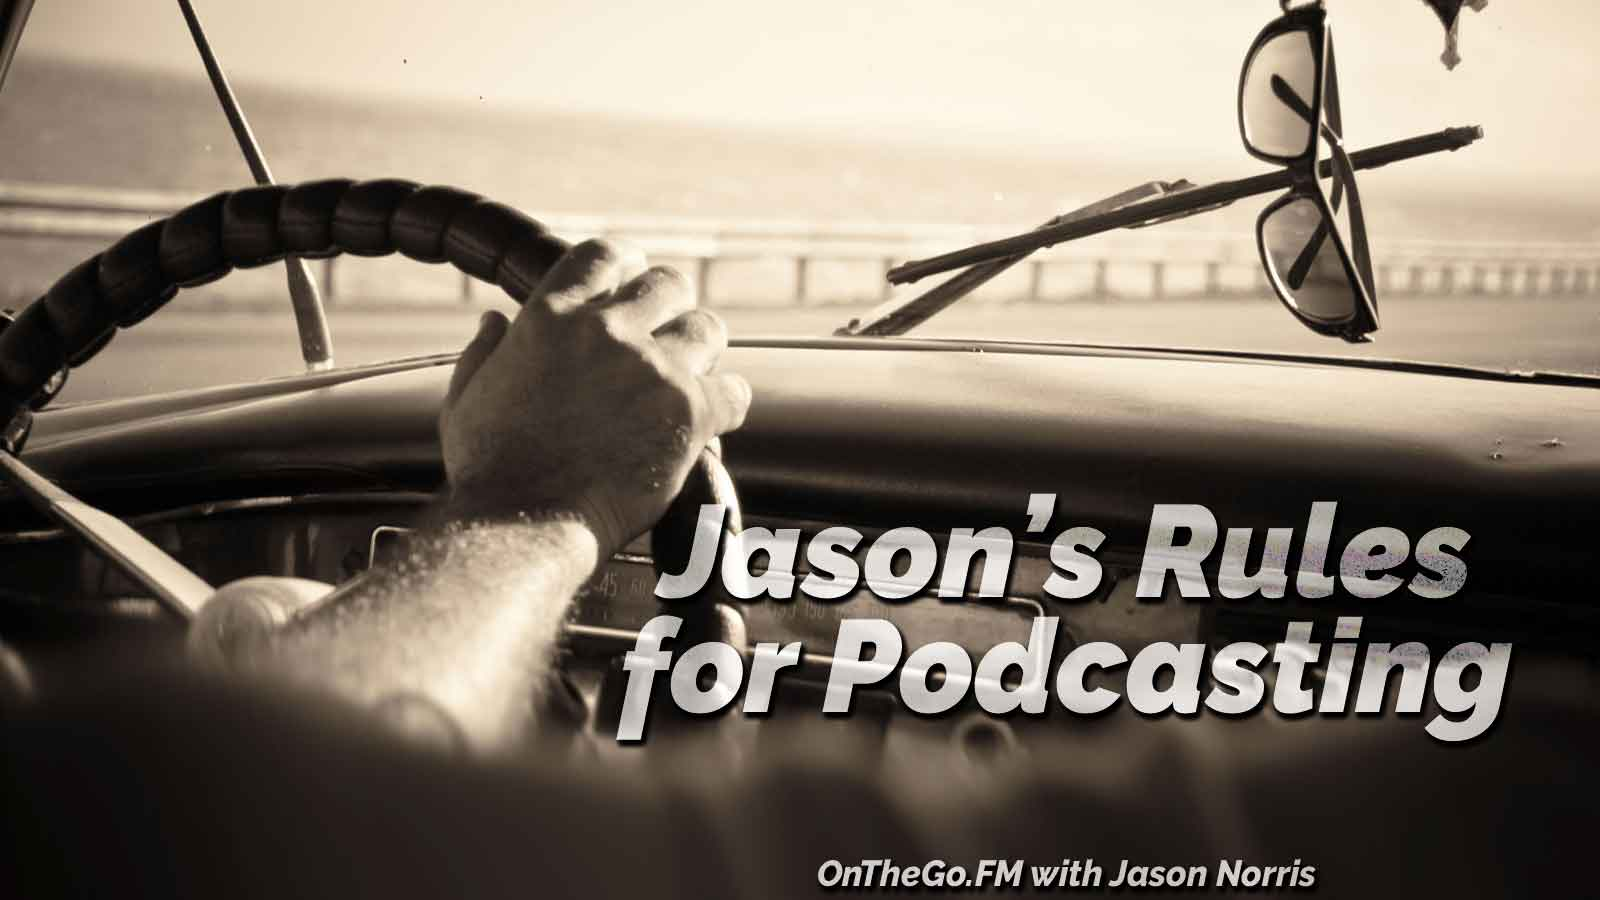 Jason's Rules for Podcasting by Jason E. Norris